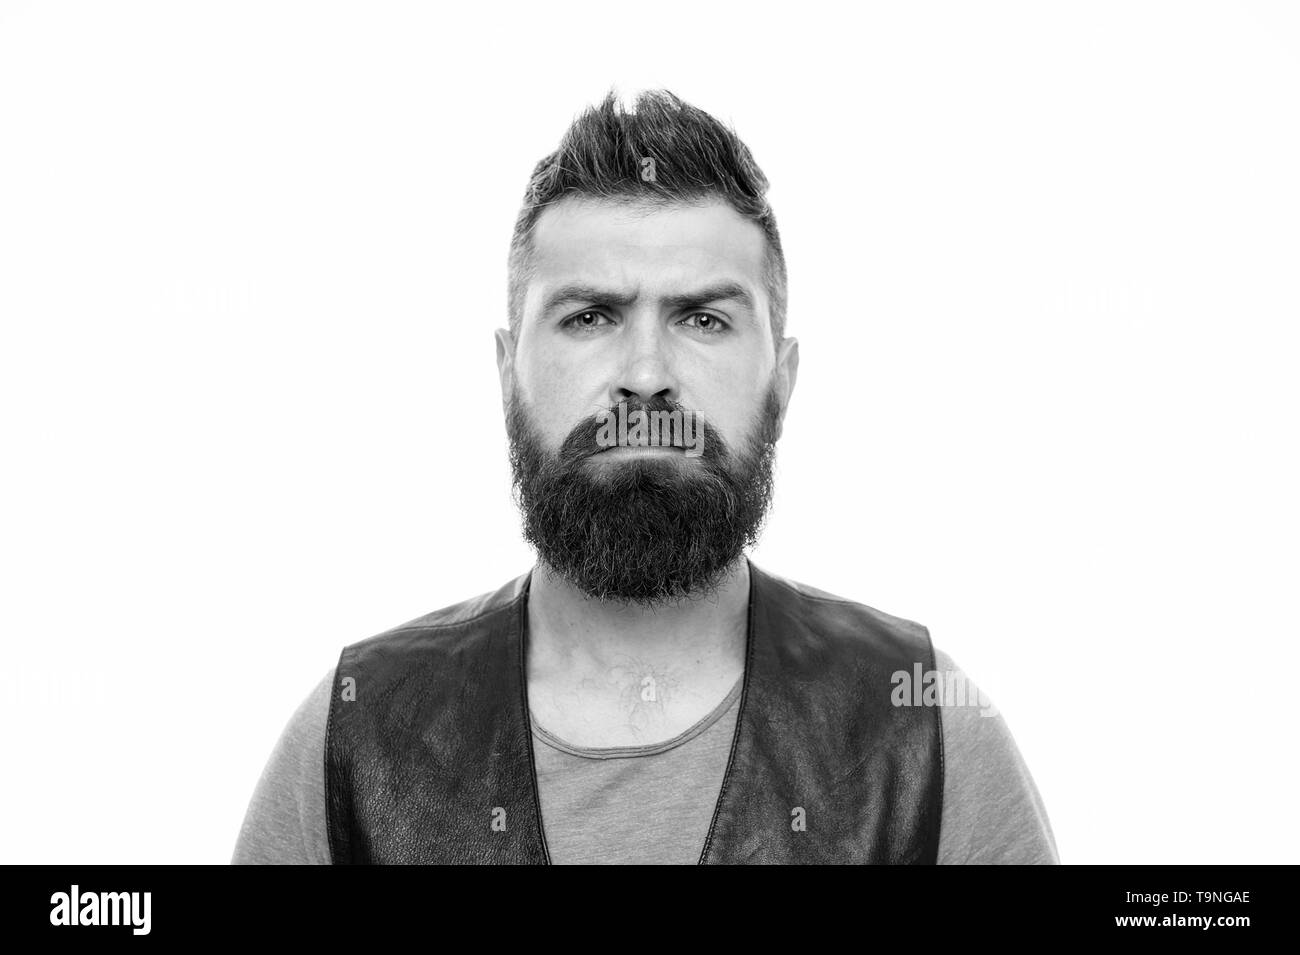 Facial hair treatment. Masculinity brutality and beauty. Hipster with beard brutal guy. Masculinity concept. Barber shop and beard grooming. Styling b - Stock Image